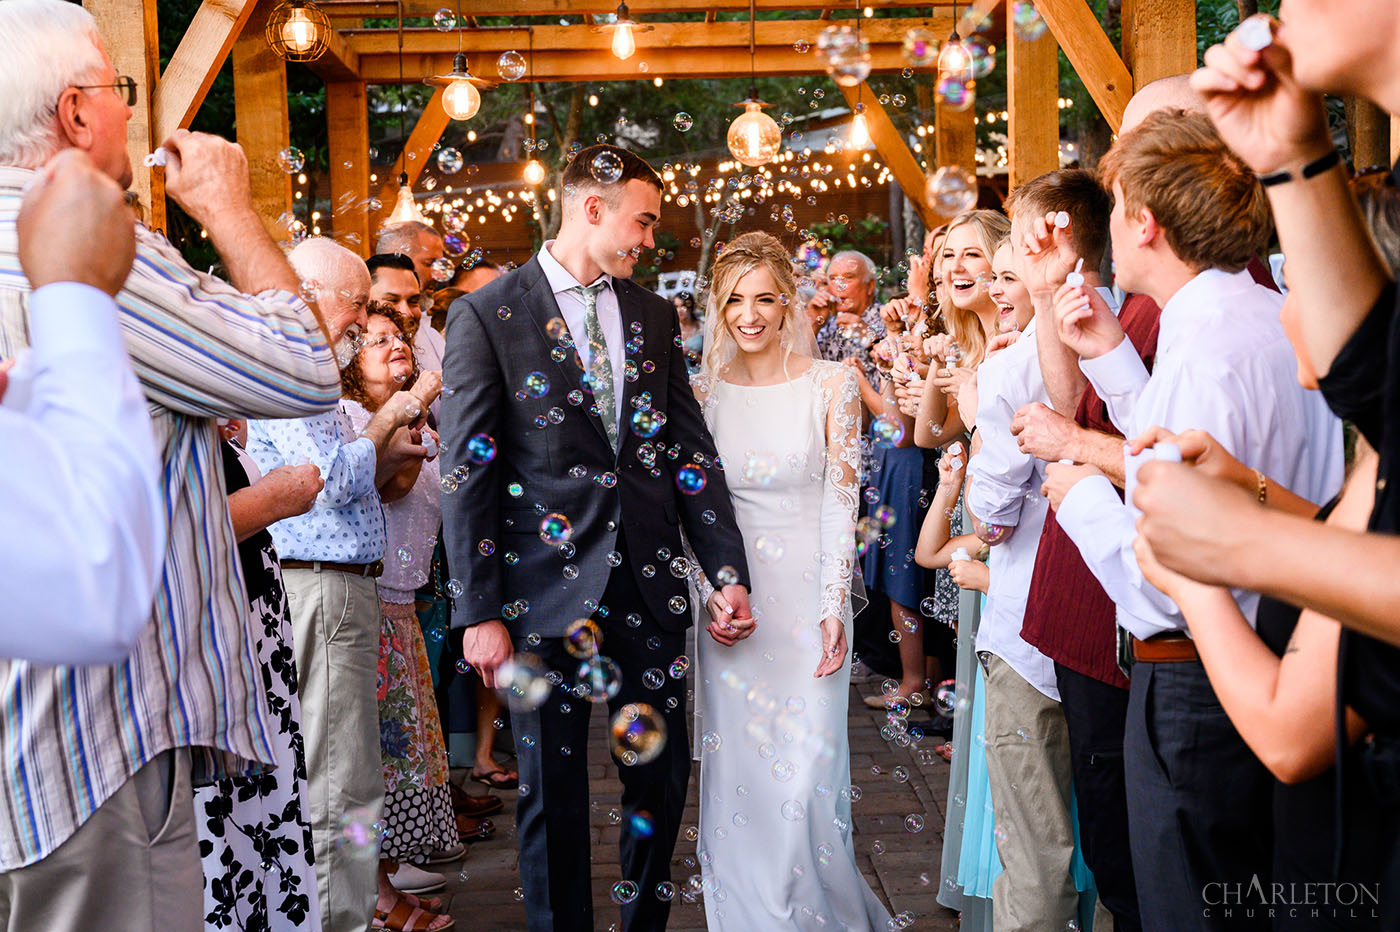 gardens at sutter creek wedding with bubble send off by photographer charleton churchill amador county